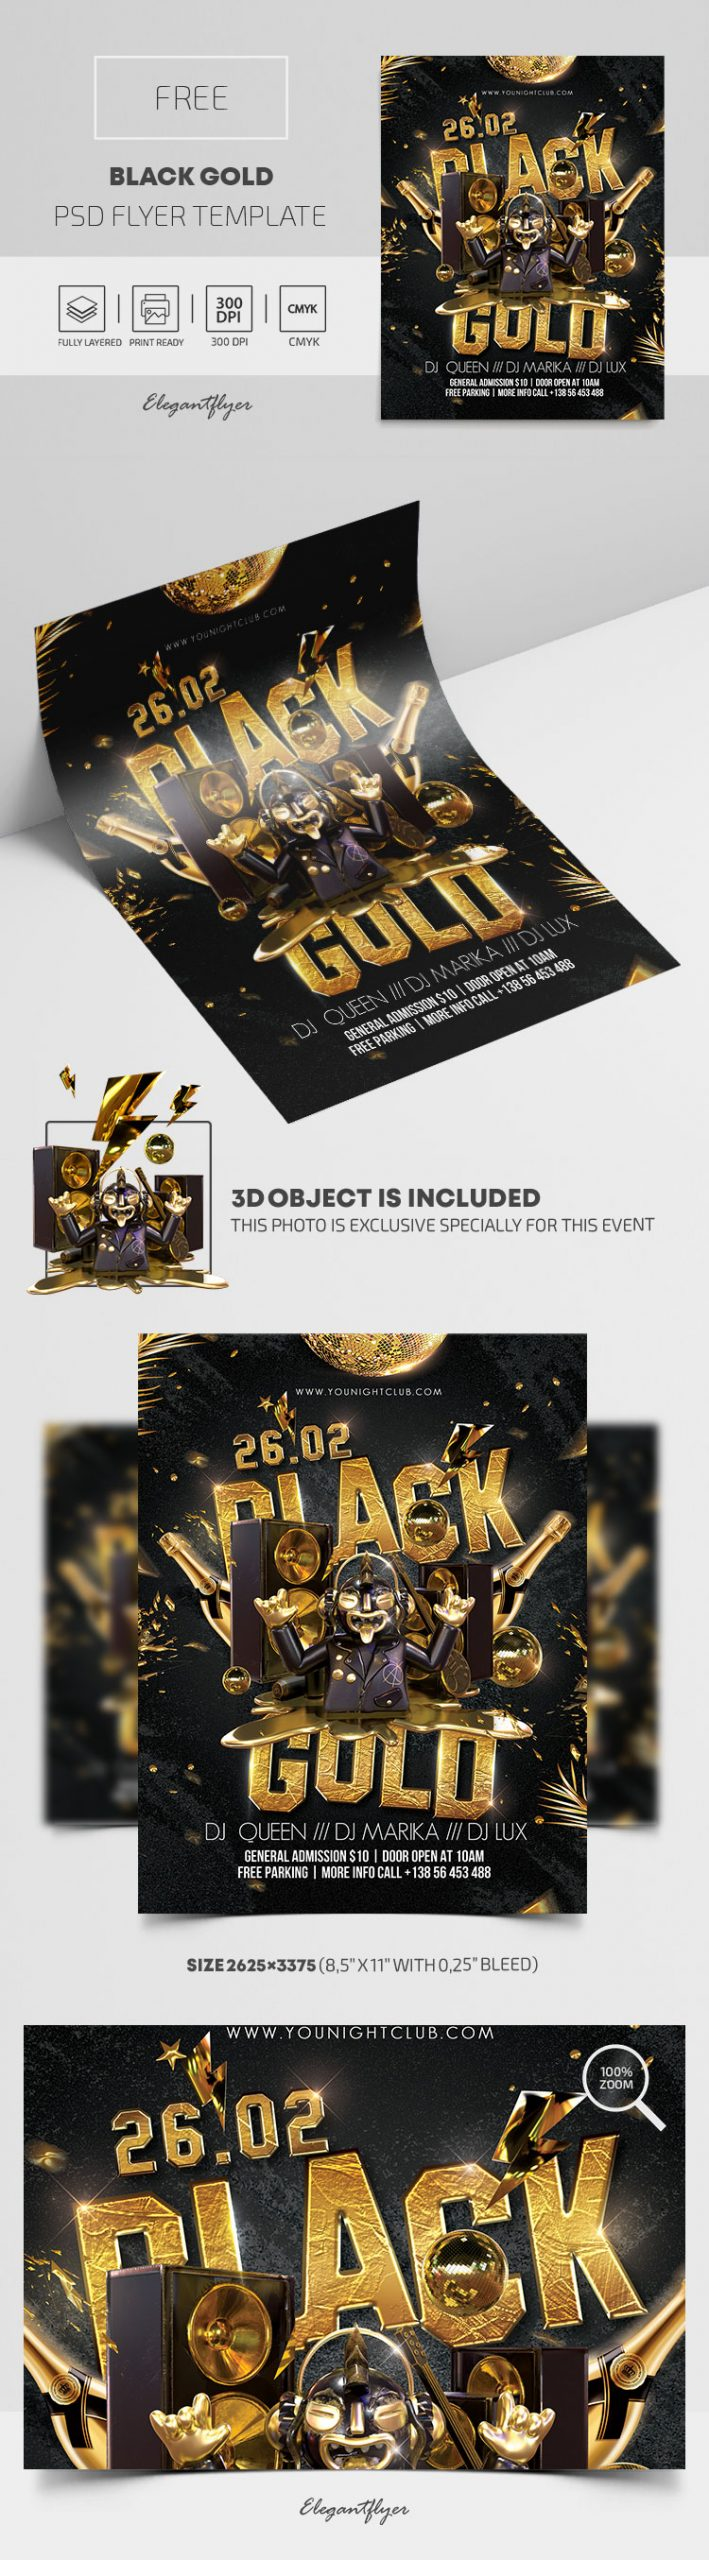 Black Gold – Free PSD Flyer Template